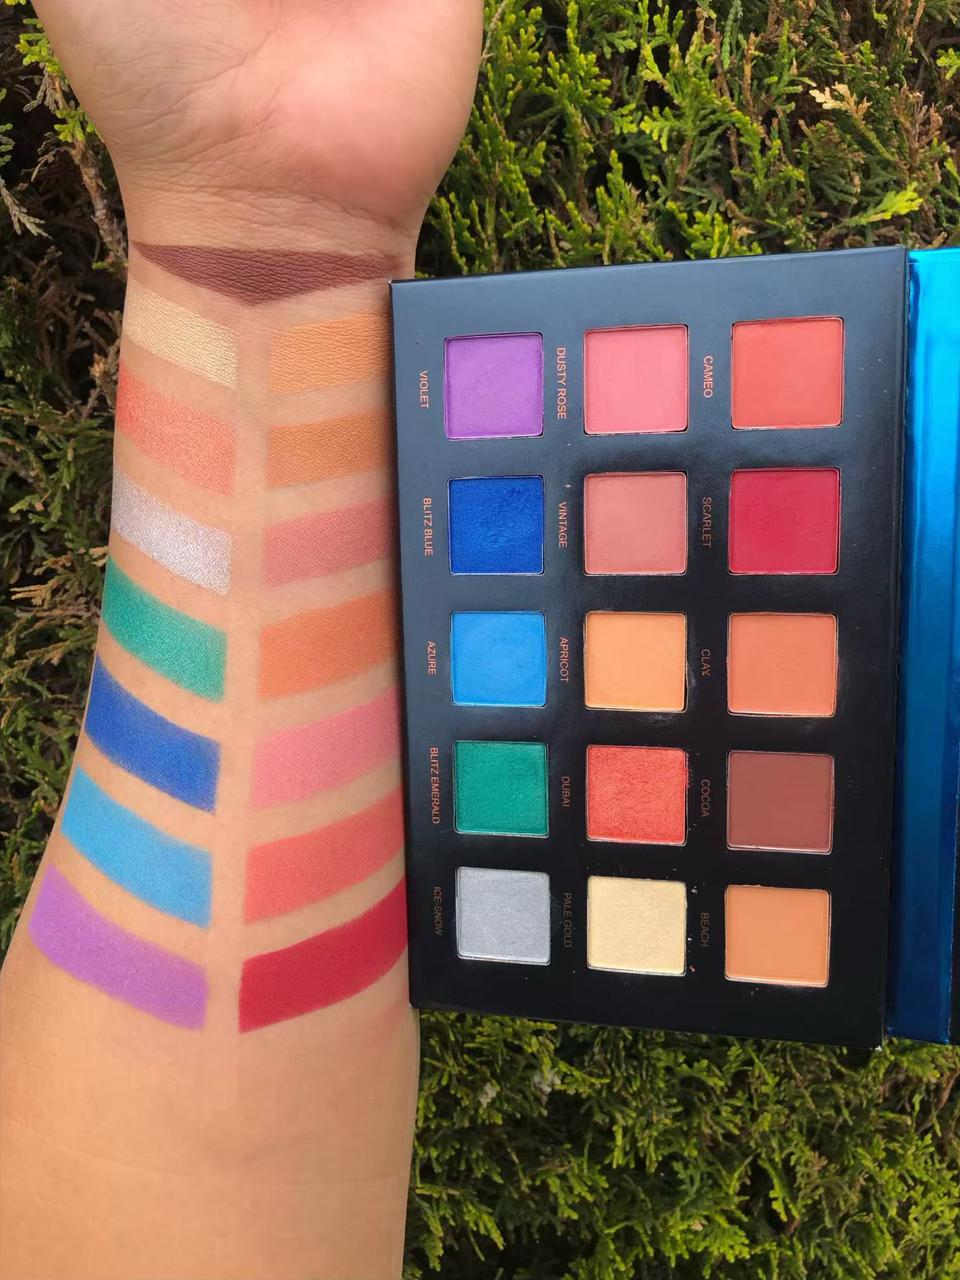 Beauty Glazed STRELITZIA textured shadow palette тени 15 цветов